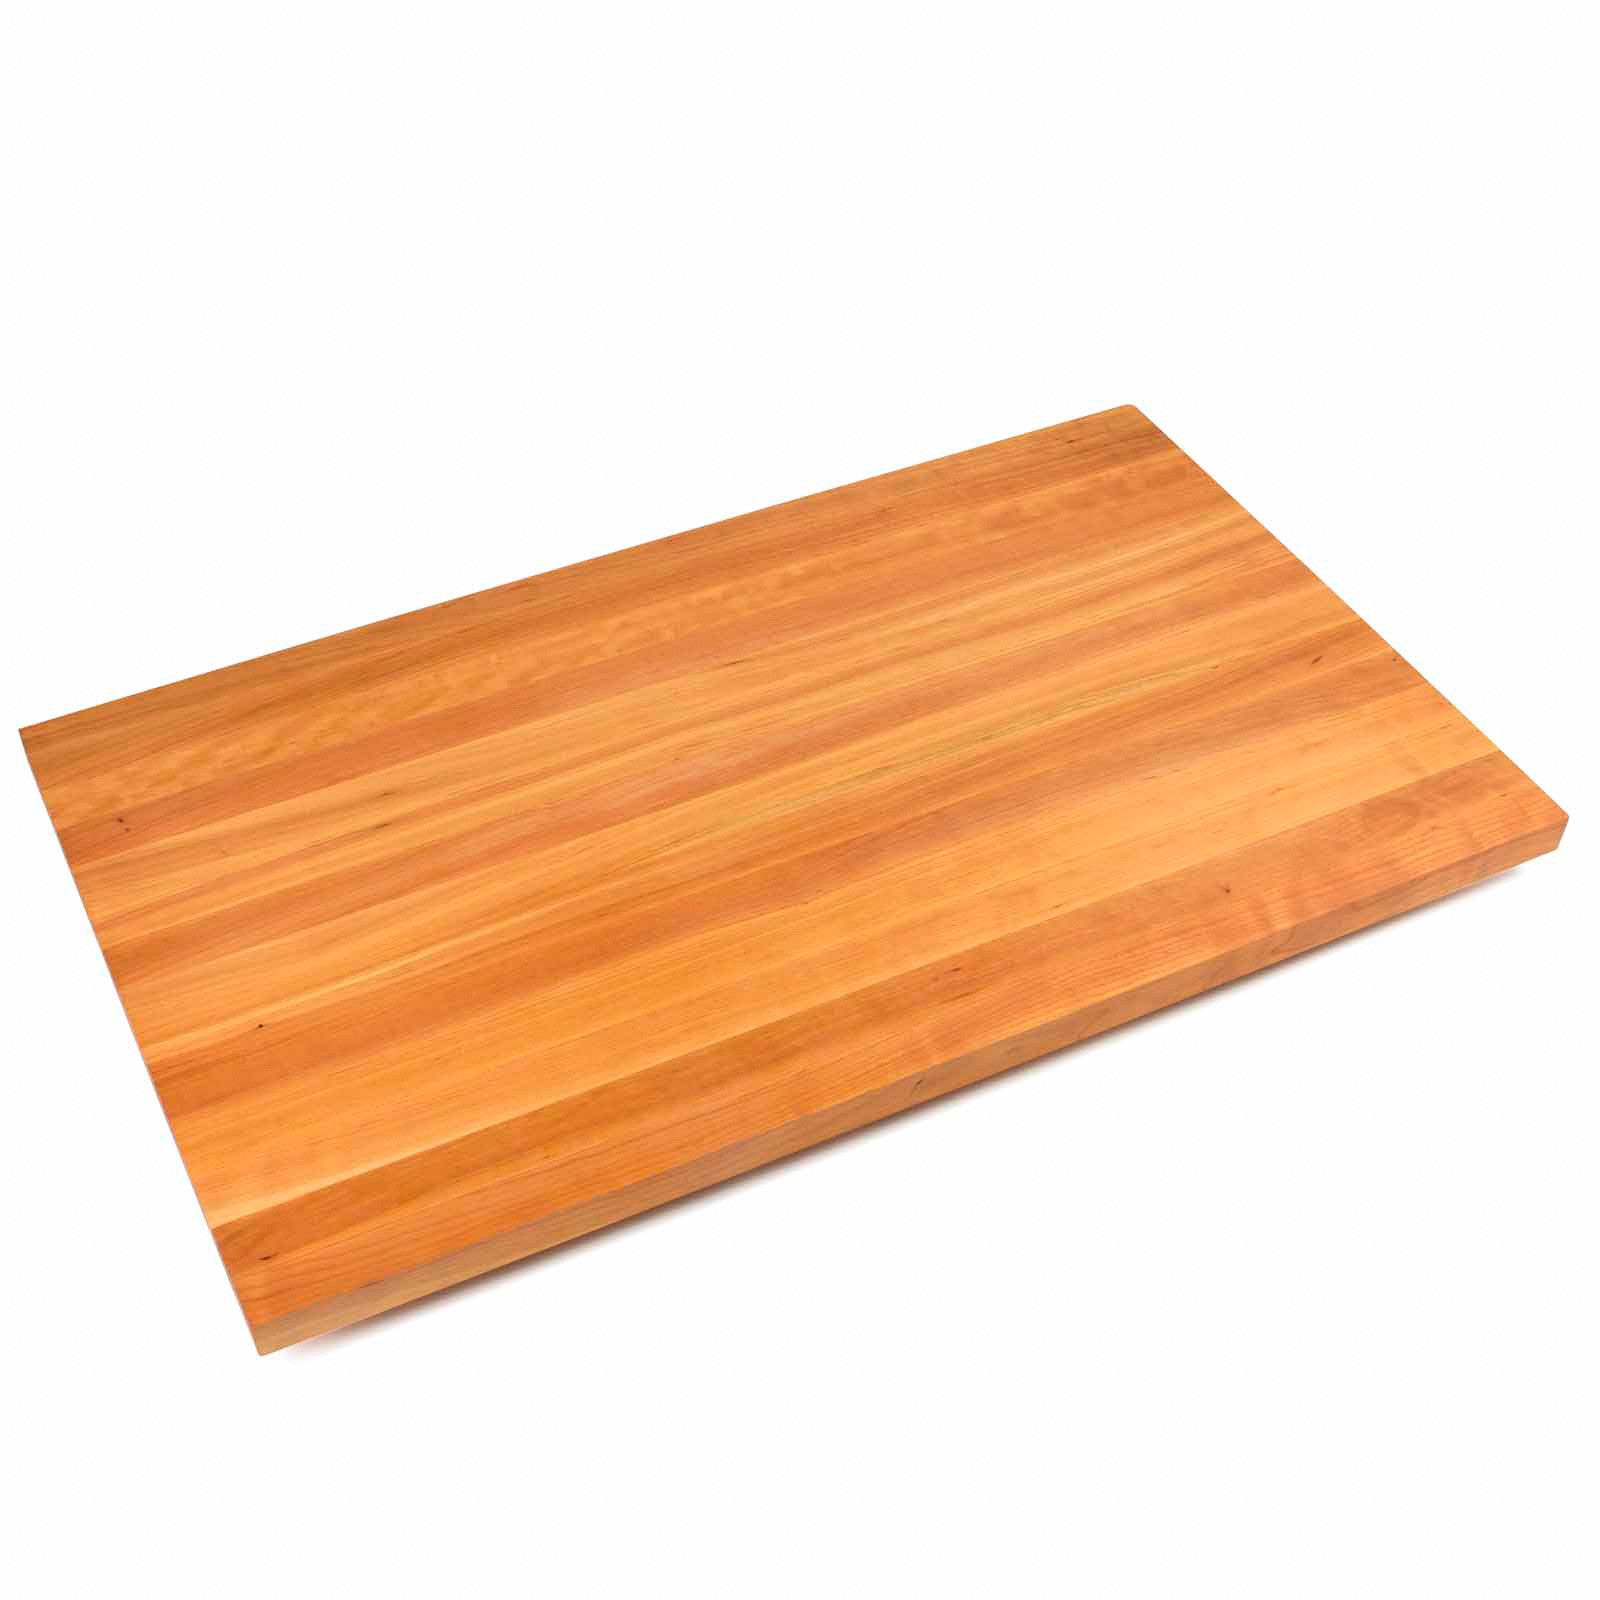 "John Boos 1 1/2"" Thick Edge Grain Cherry Butcher Block Countertop - 25"" Wide"